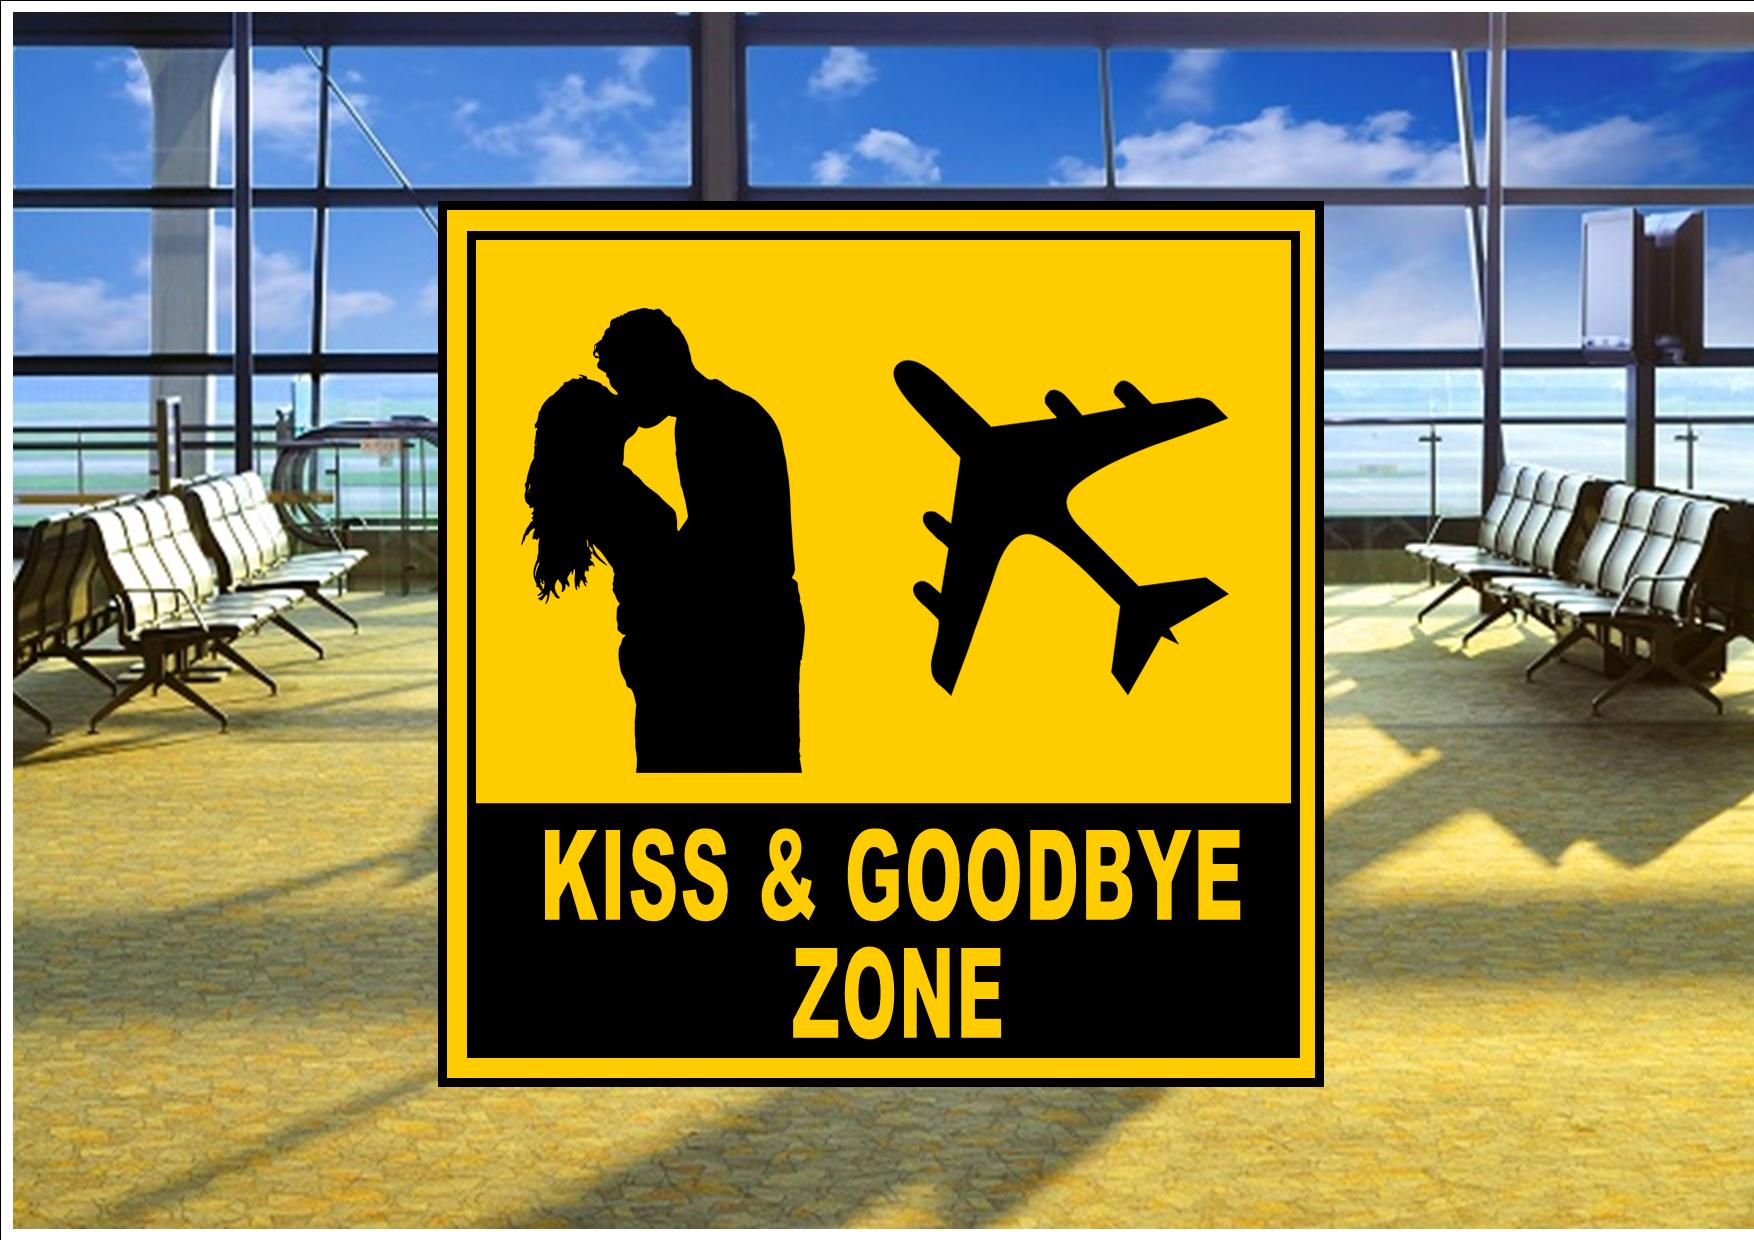 Airport Kissing Zone Sign The Rooshty Beach